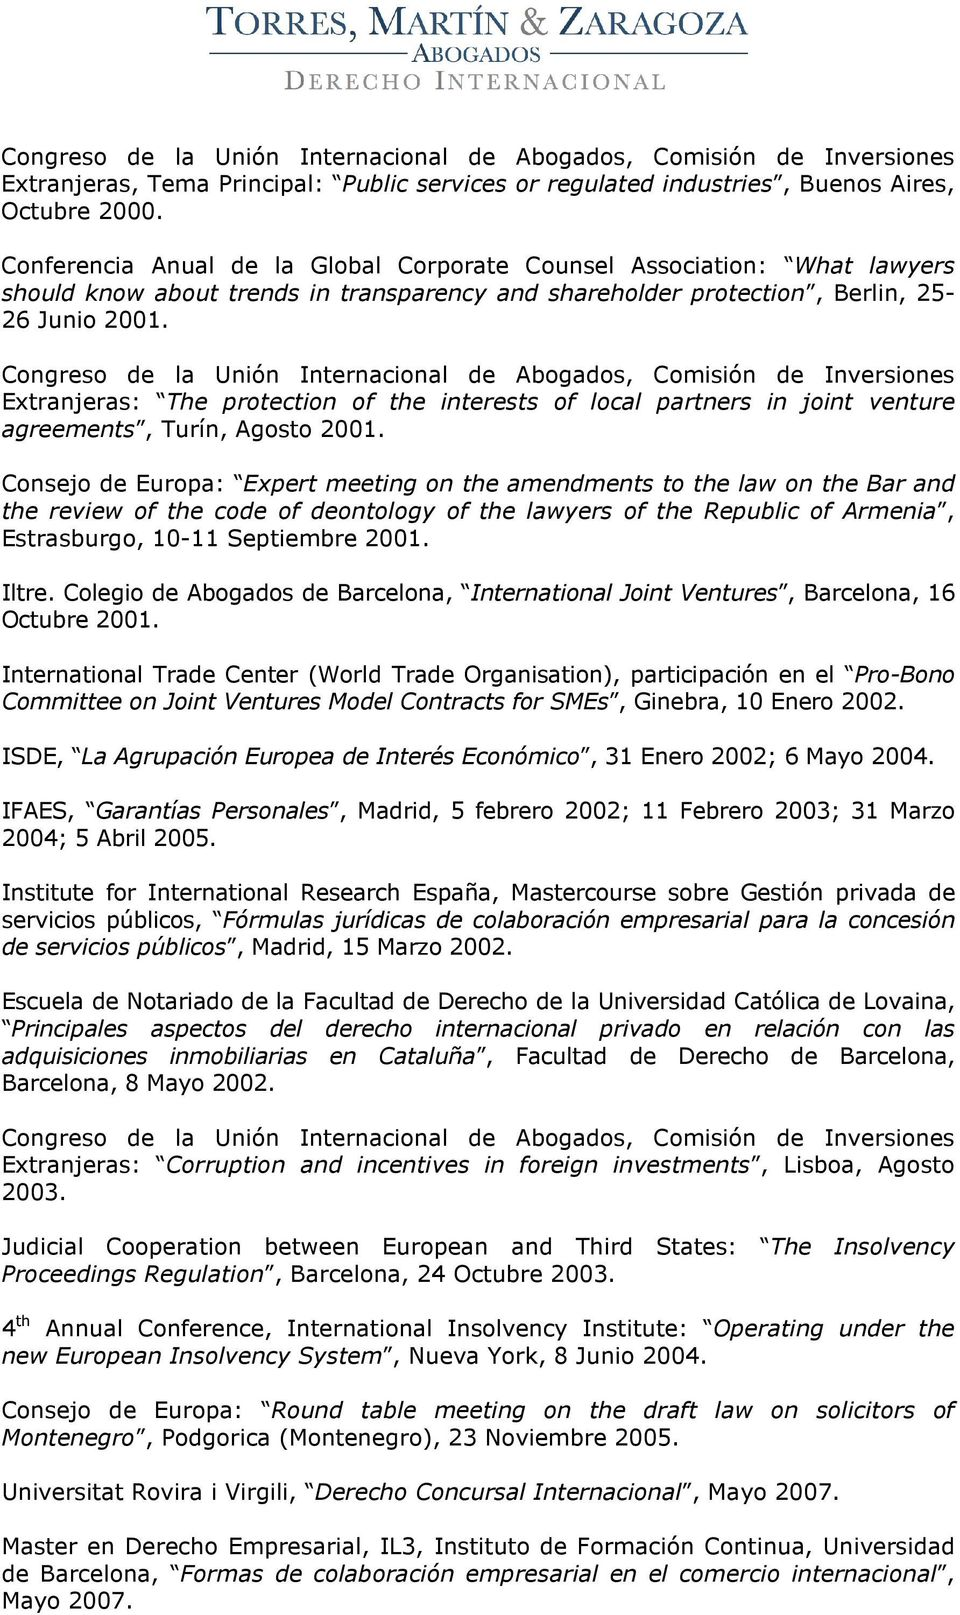 Extranjeras: The protection of the interests of local partners in joint venture agreements, Turín, Agosto 2001.